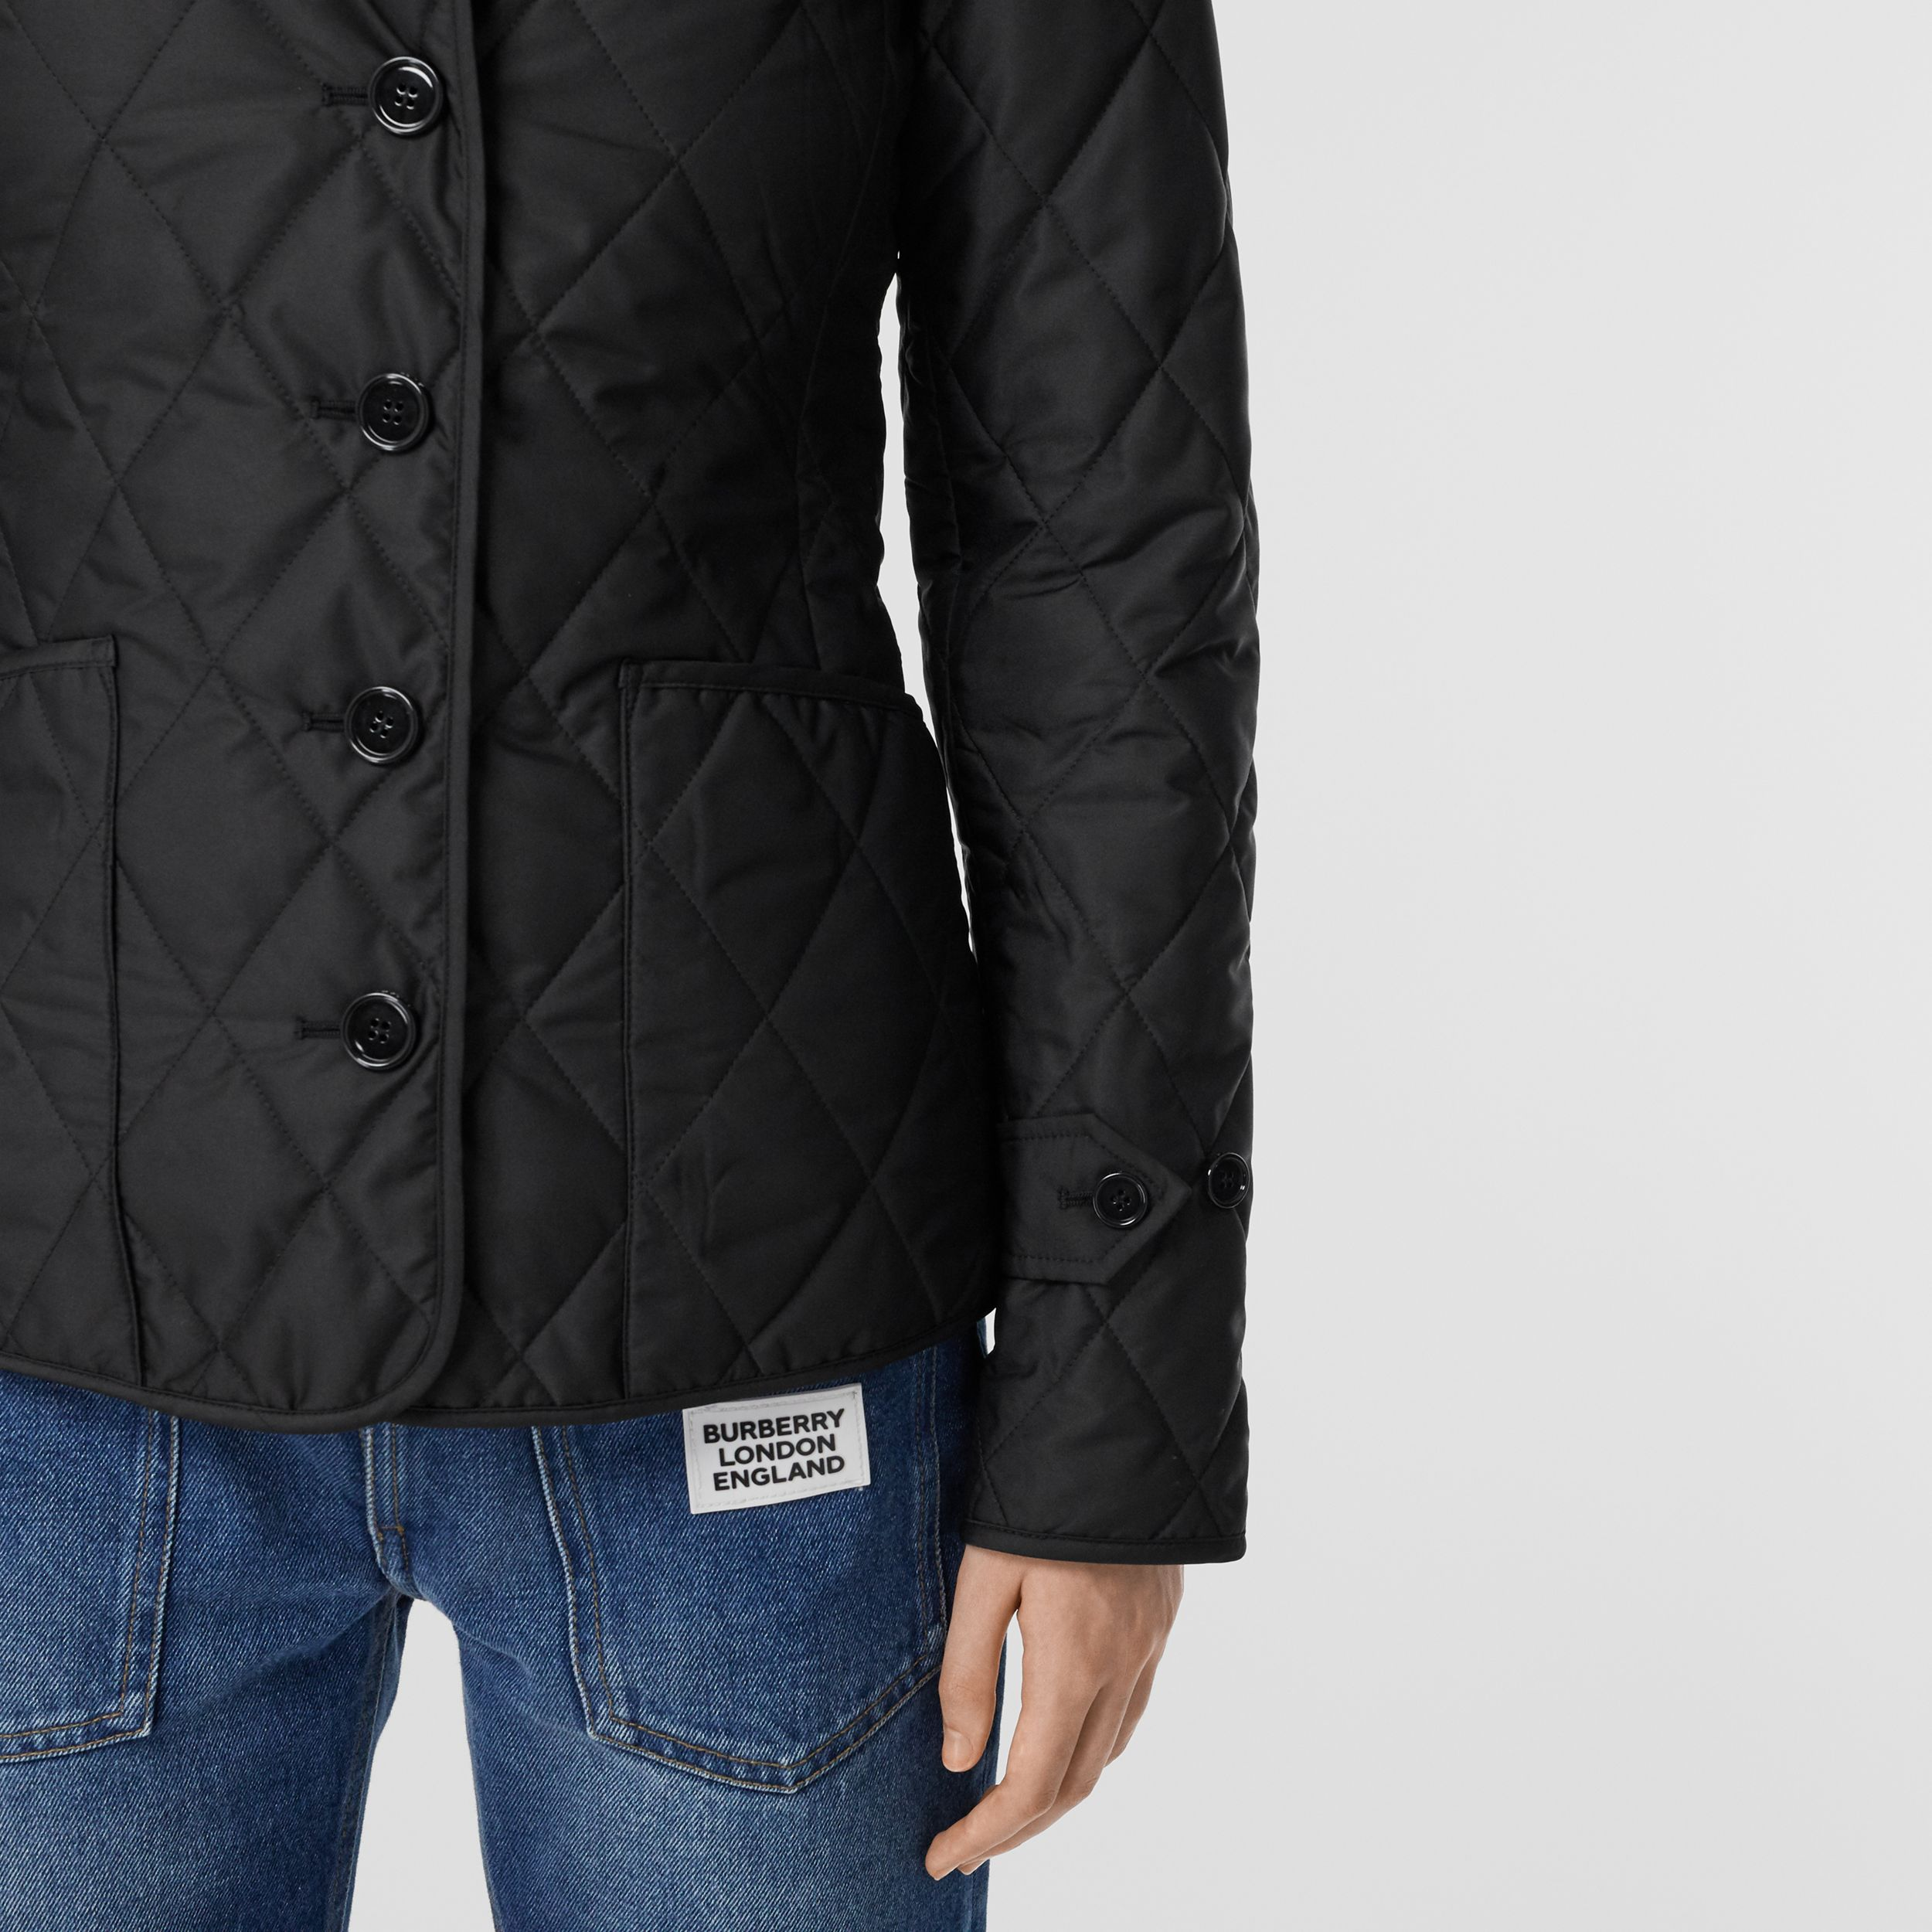 Diamond Quilted Thermoregulated Jacket in Black | Burberry - 2